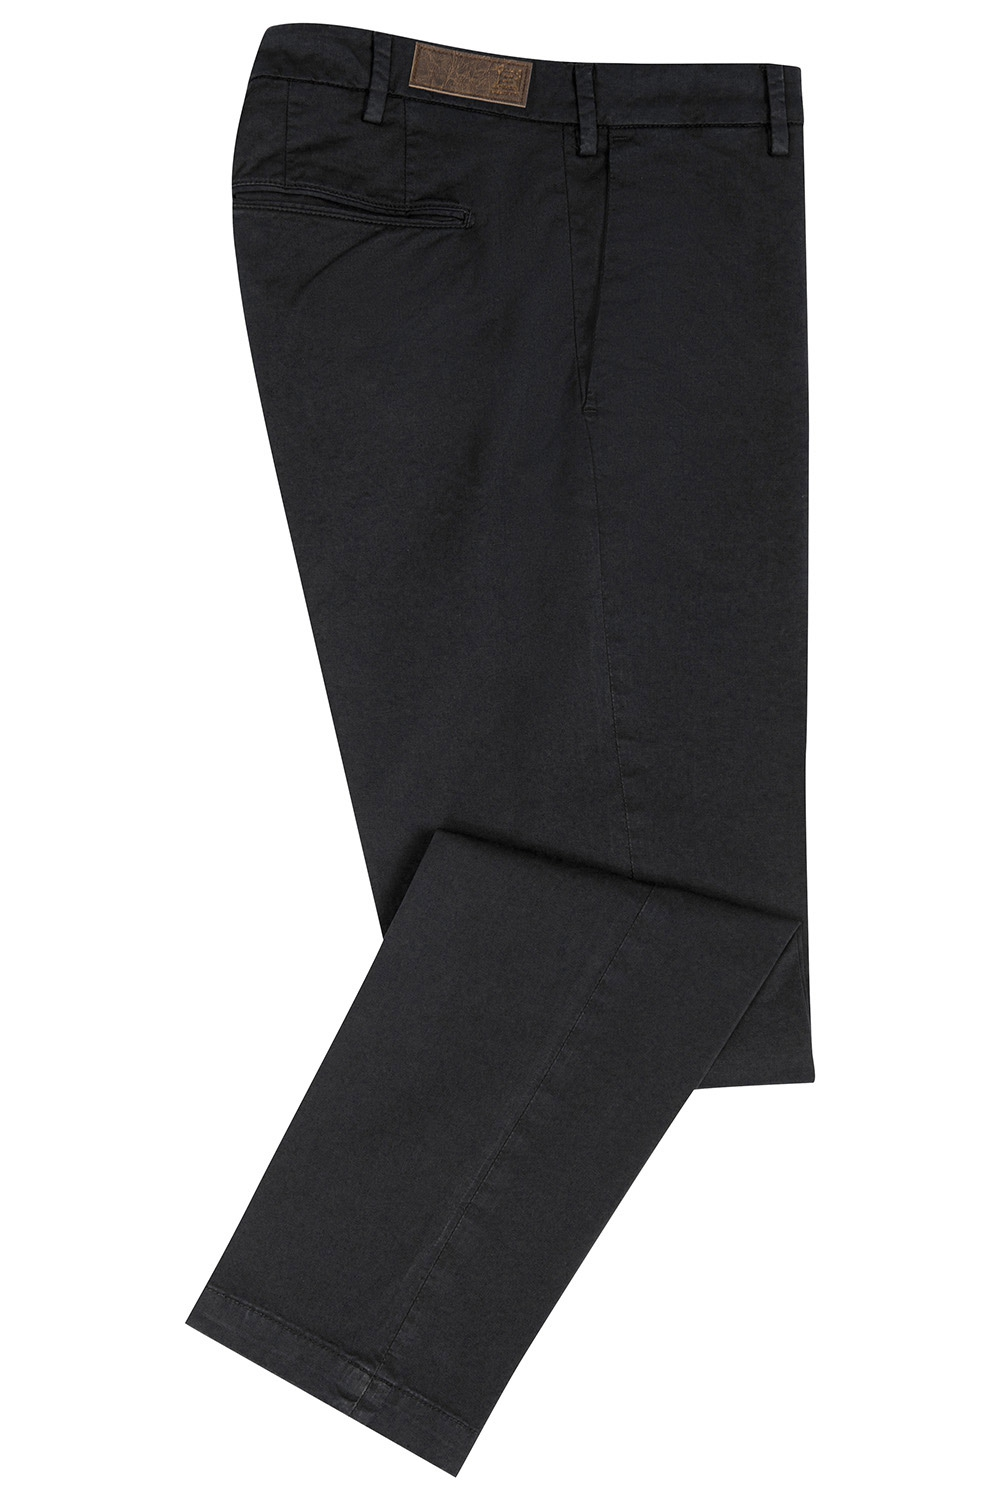 Regular Black Plain Trouser 0